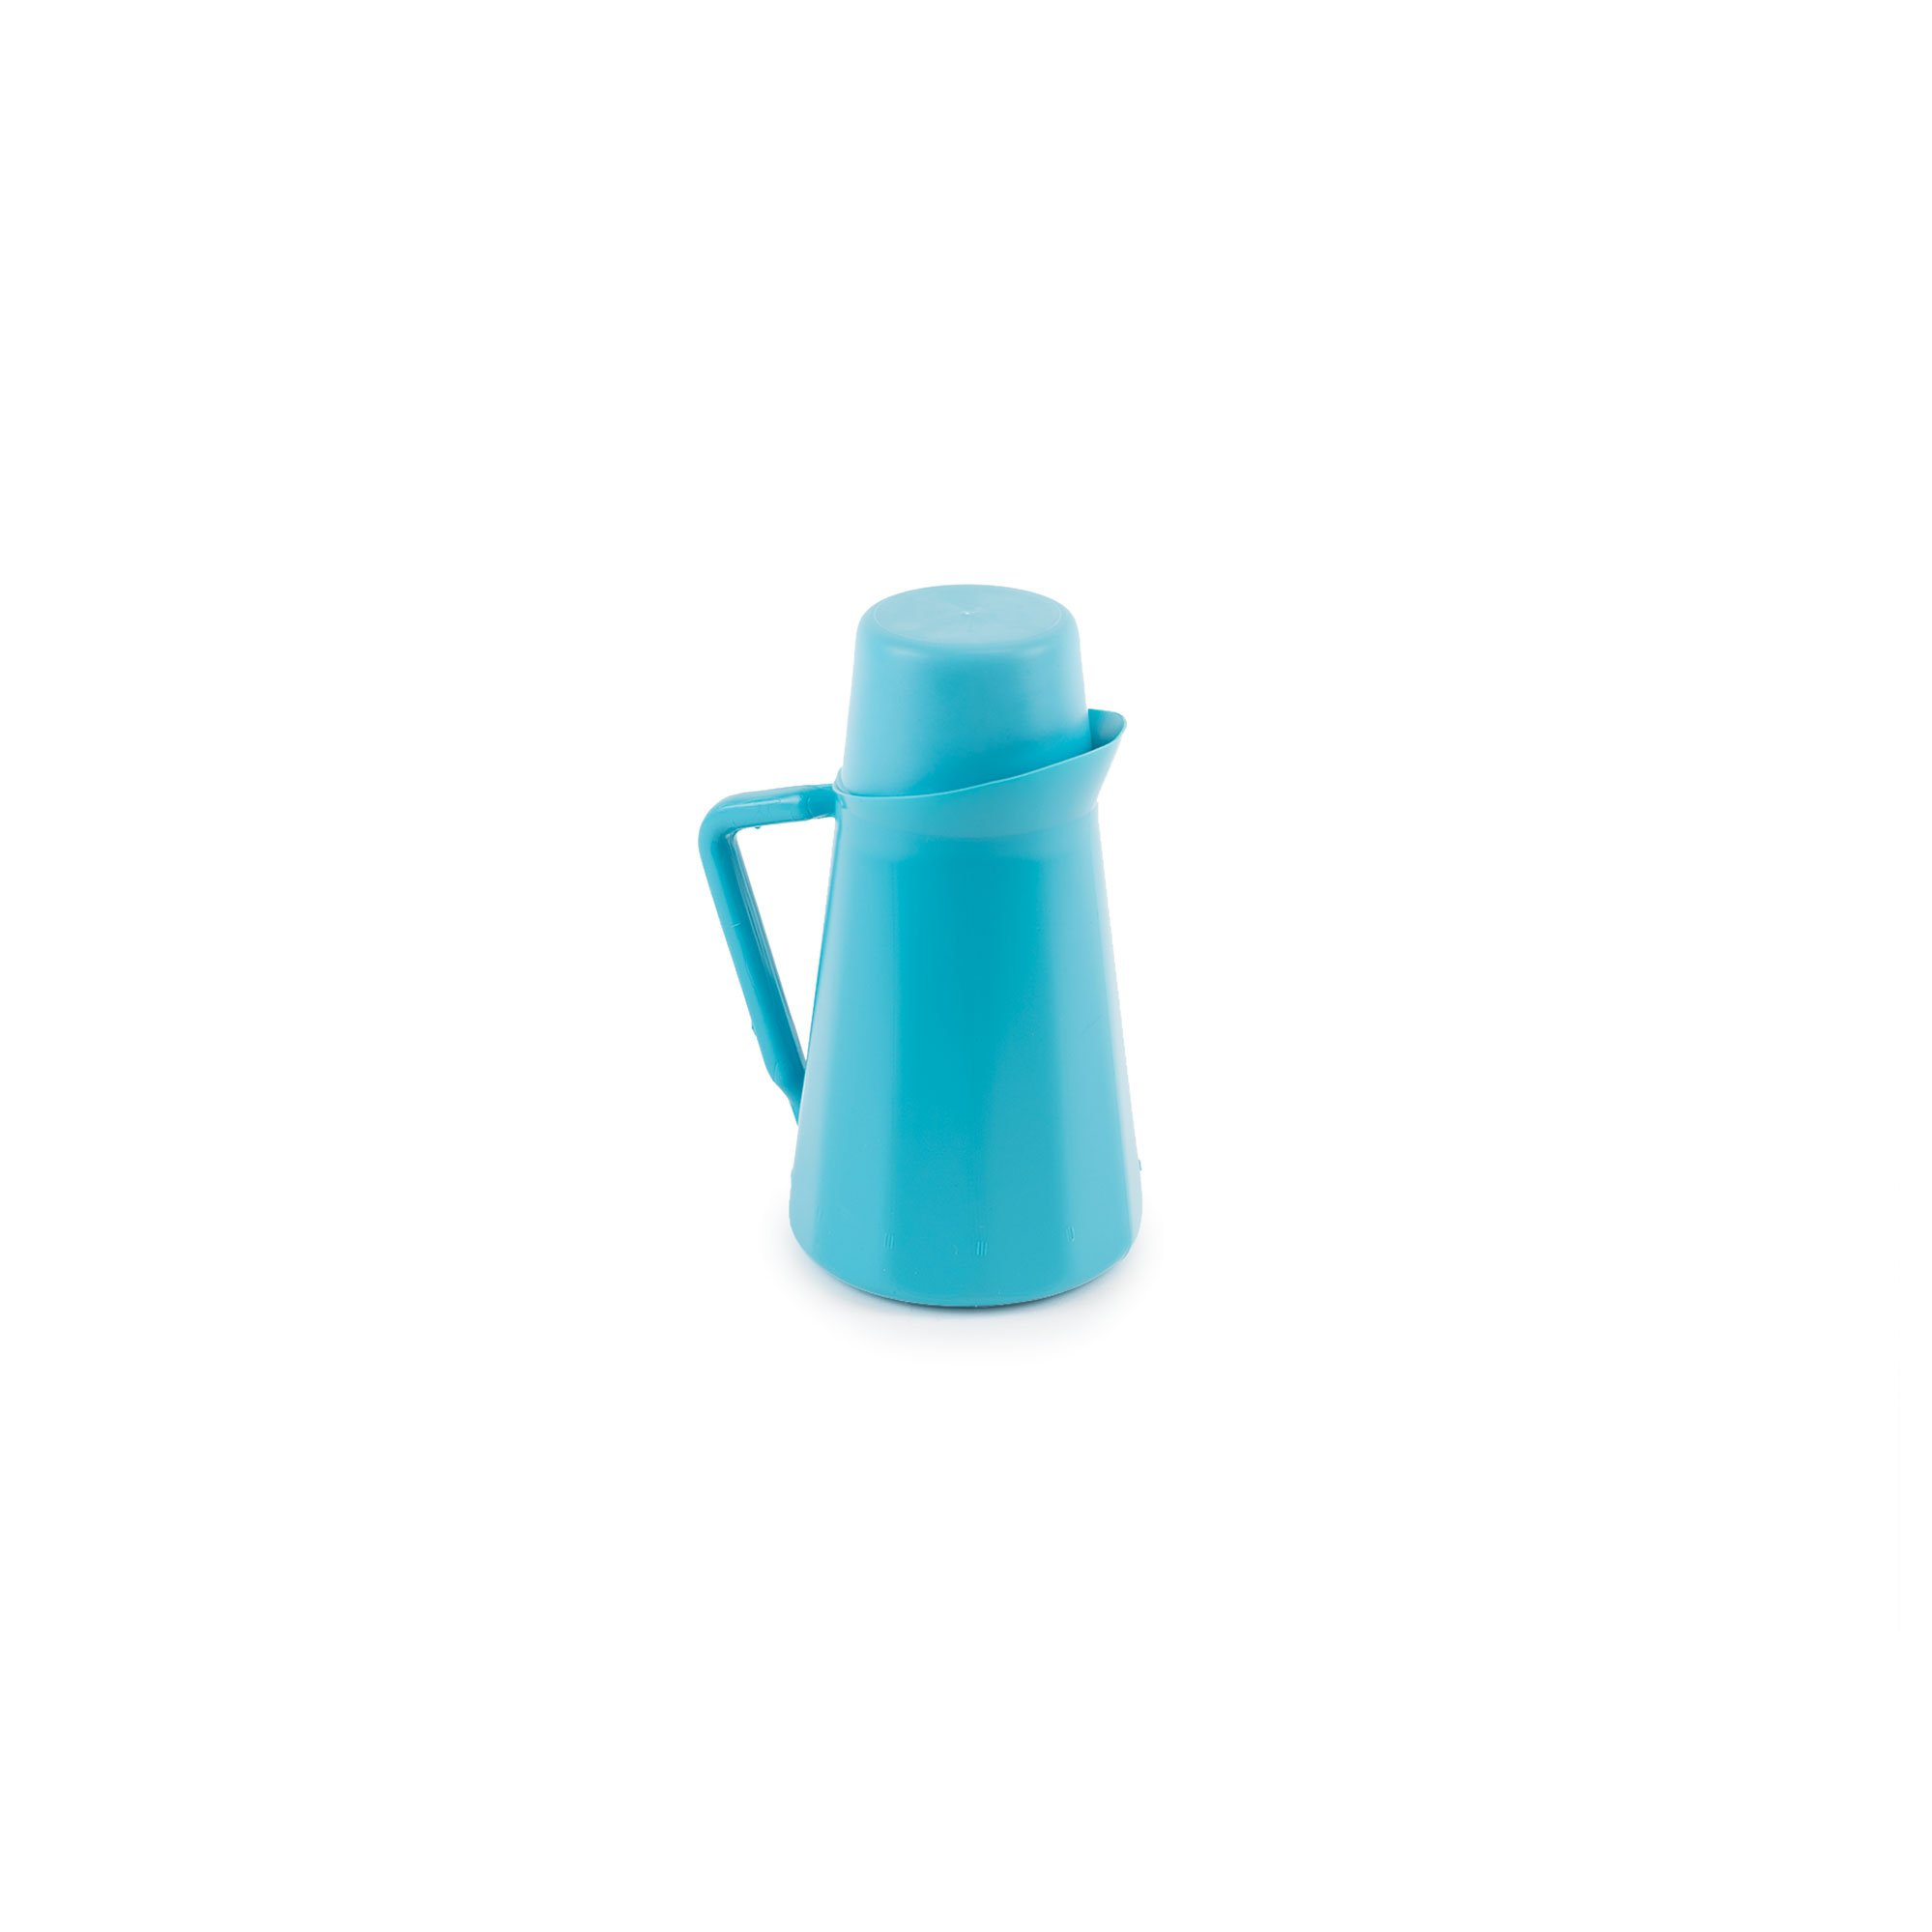 Medegen Medical Products 00110 Pitchers with 9 fl. oz. Cup Covers, Serializable, 1 Quart Capacity, Blue (Pack of 12)